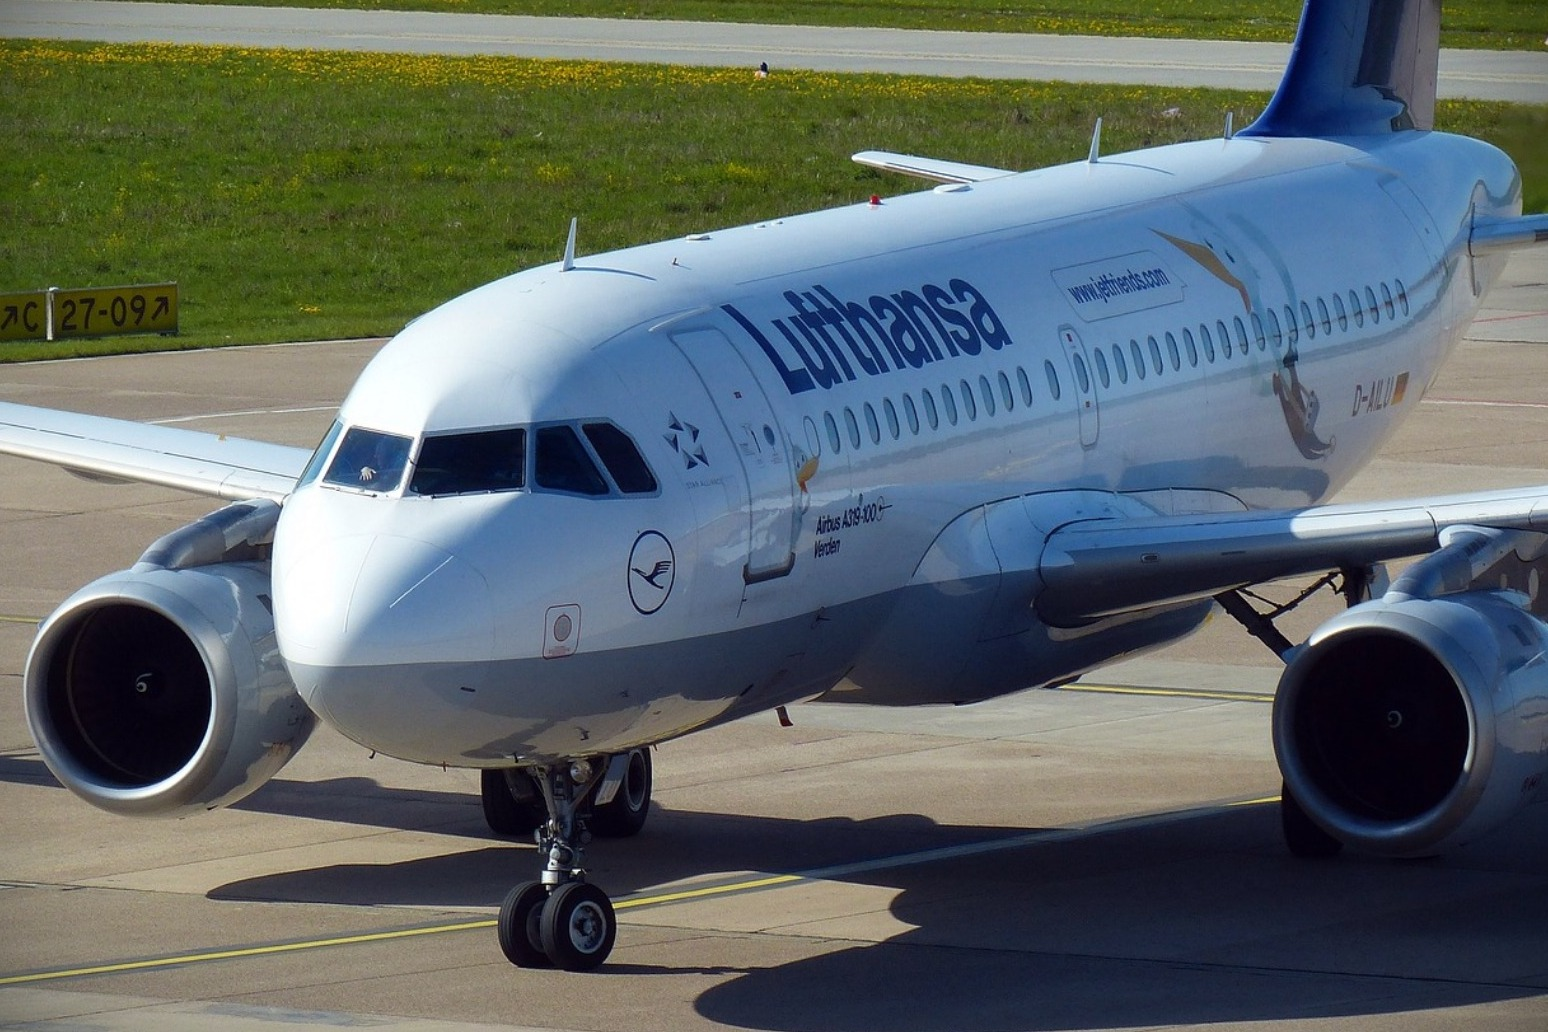 Lufthansa flights grounded due to strike action